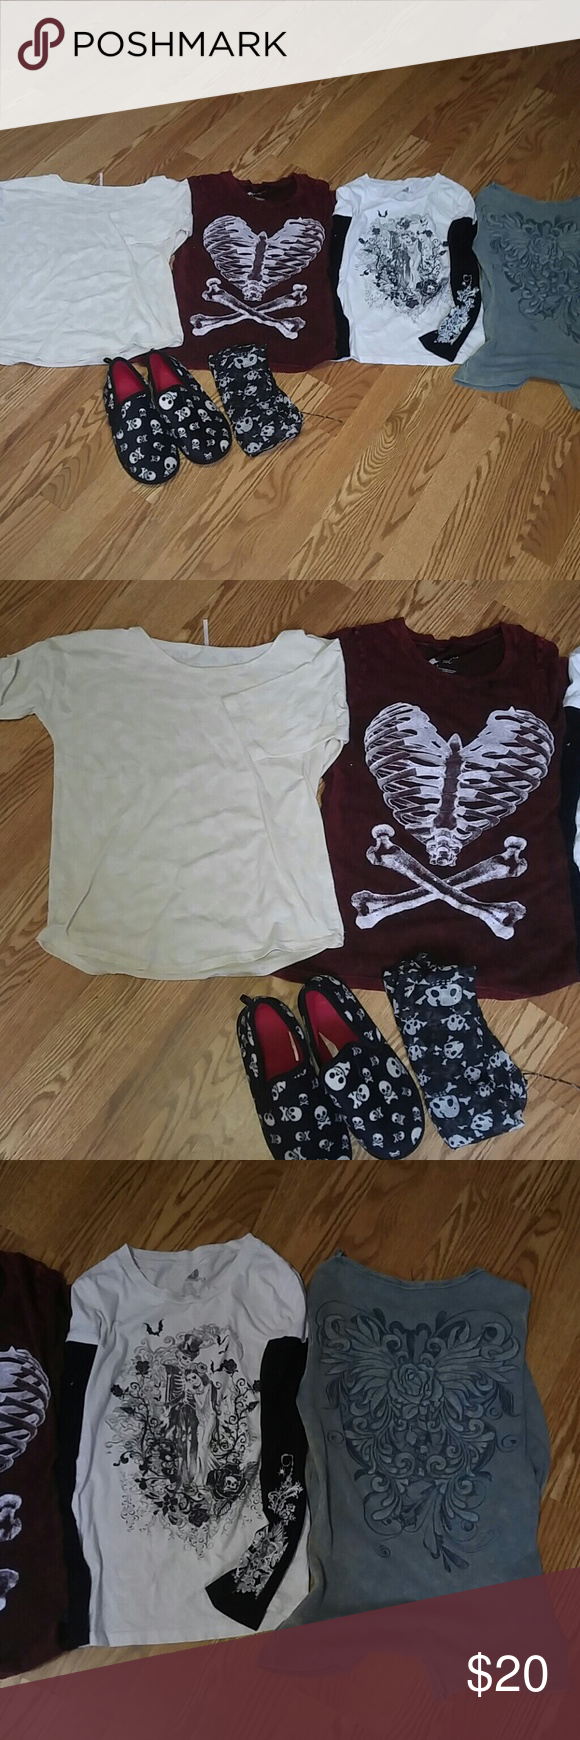 Skull top bundle Four tops  Med Cream colored with white skulls worn maybe twice Heart bone smallworn has few holes in collar but good shape Long sleeve worn but still cute Long sleeve thermal size large is worn spotted a hole in sleeve but still super cute and warm. Shirt for every season Plus skull slippers (sm) tried on several times never used And a scarf  All tops diff size but would fit sm med comfortably. Tops